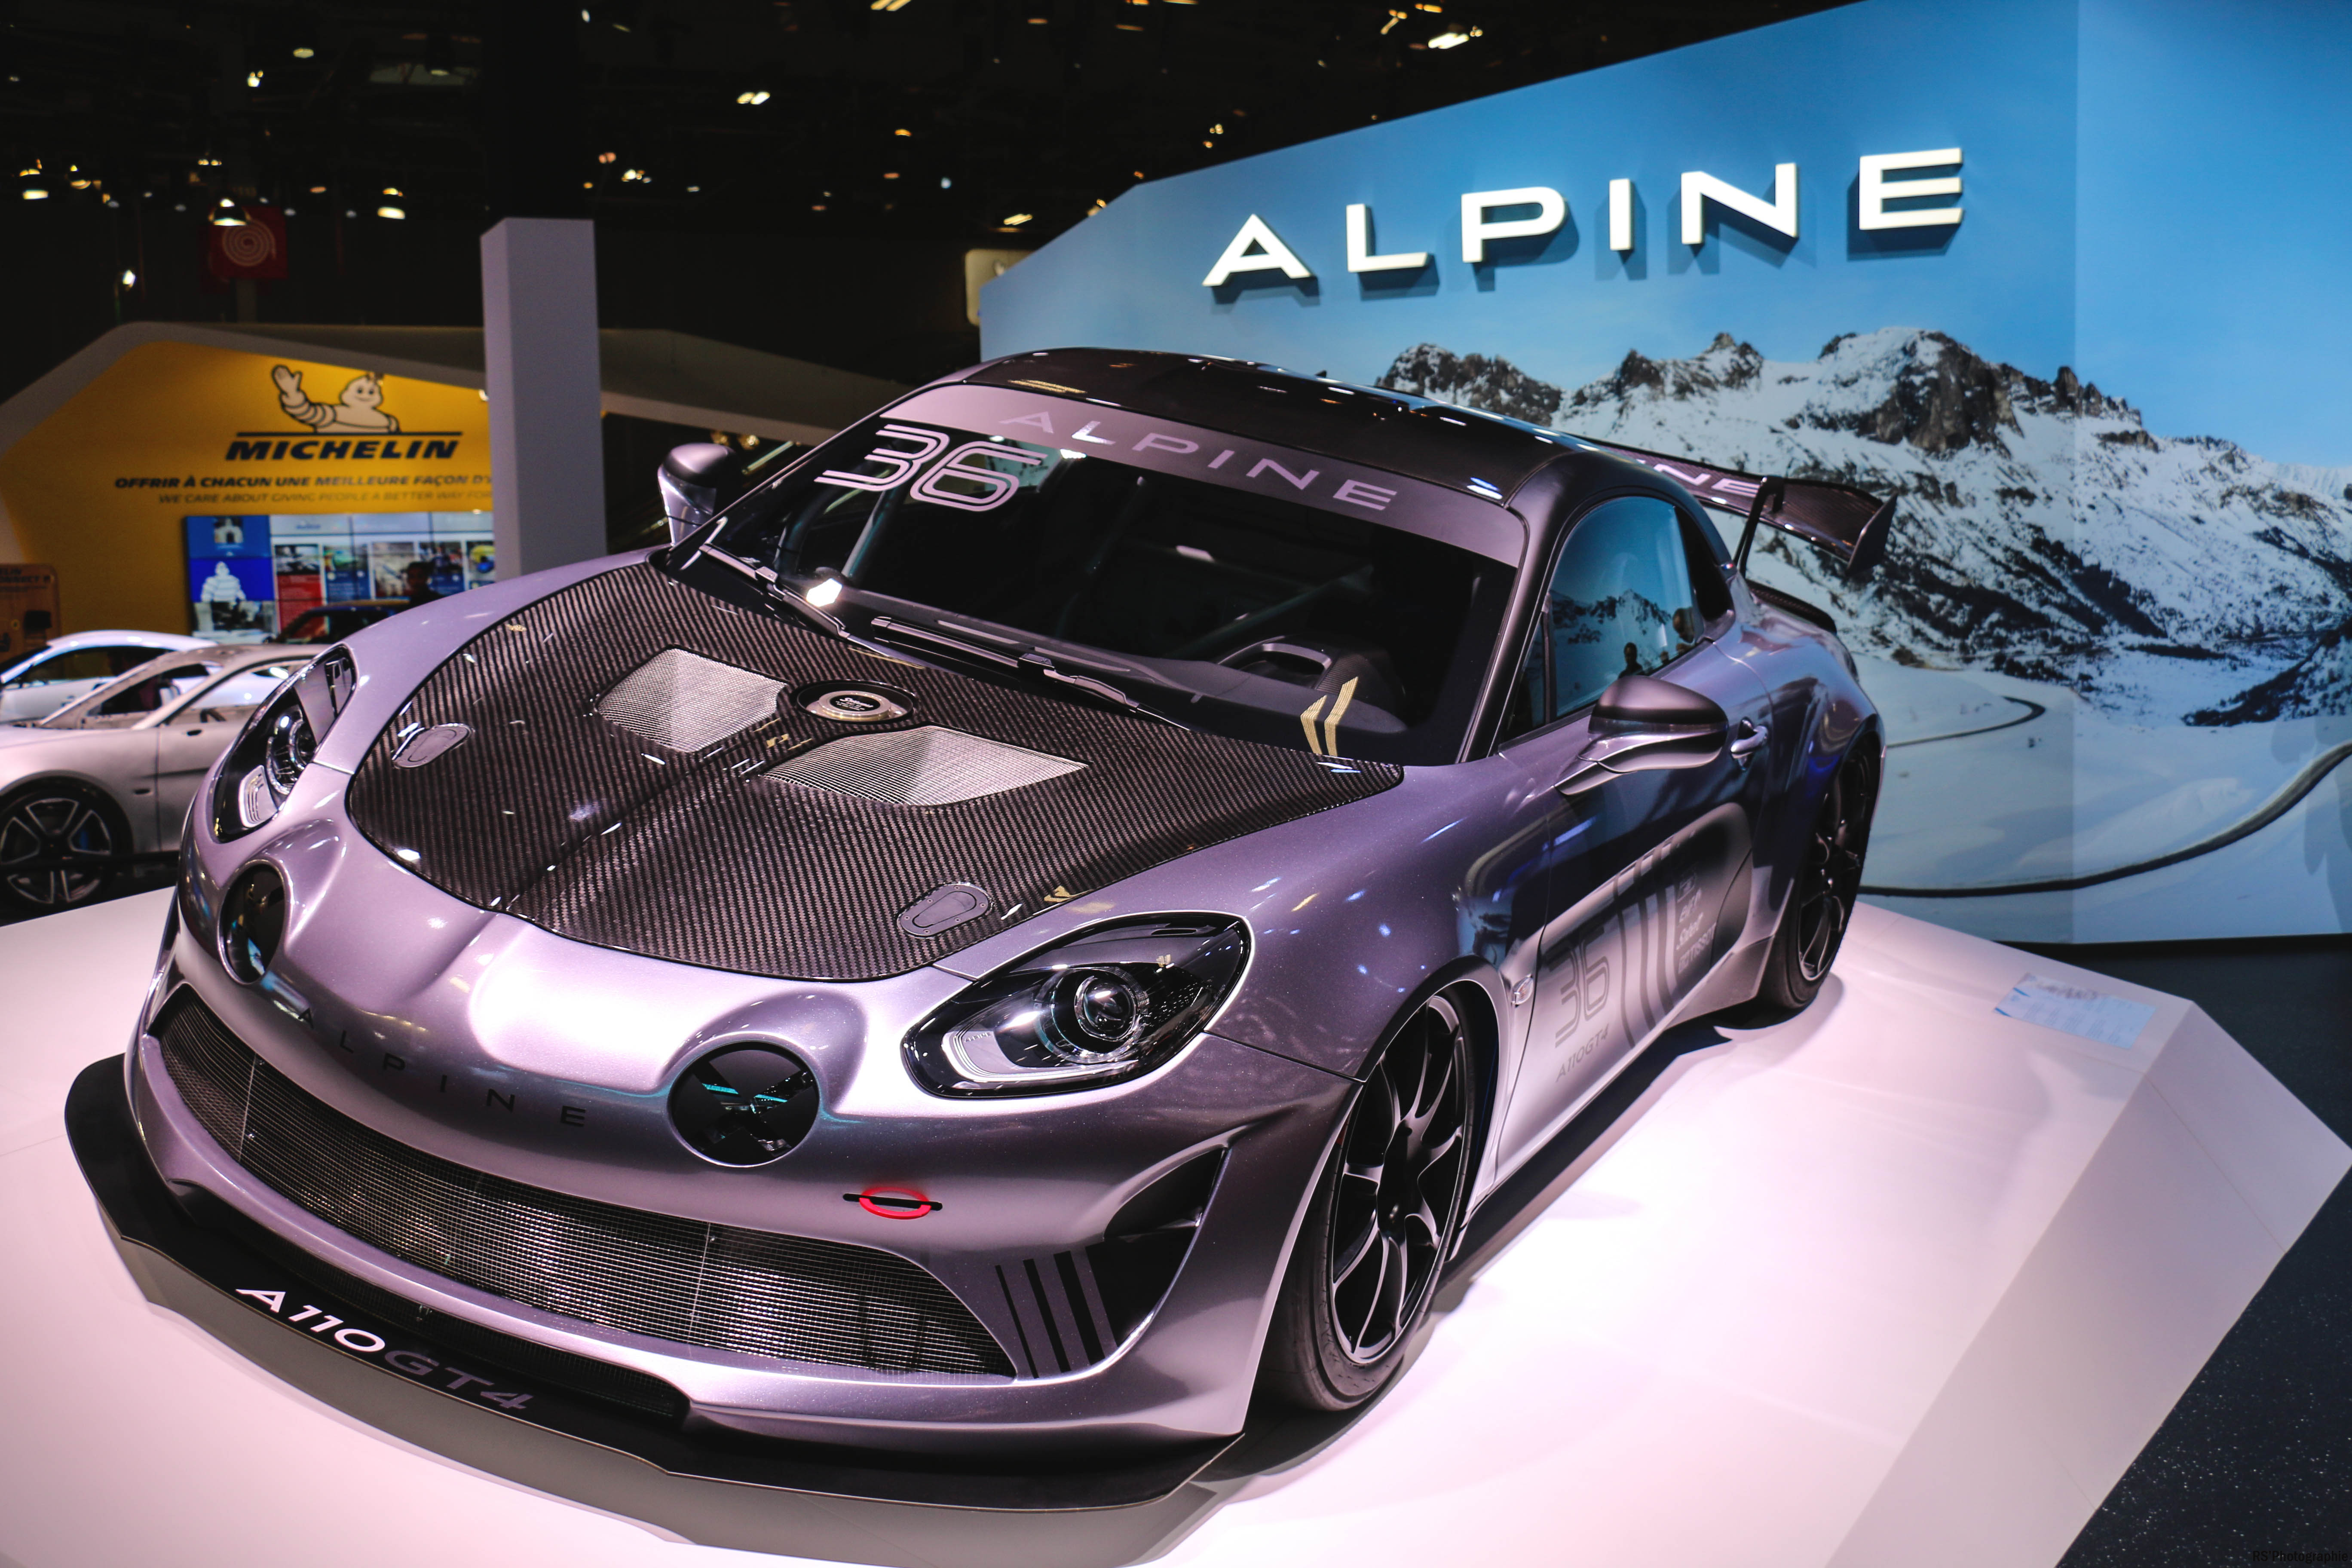 Alpine A110 GT4 - Paris Motor Show - 2018 - Mondial Auto - photo by Arnaud Demasier RS Photographie